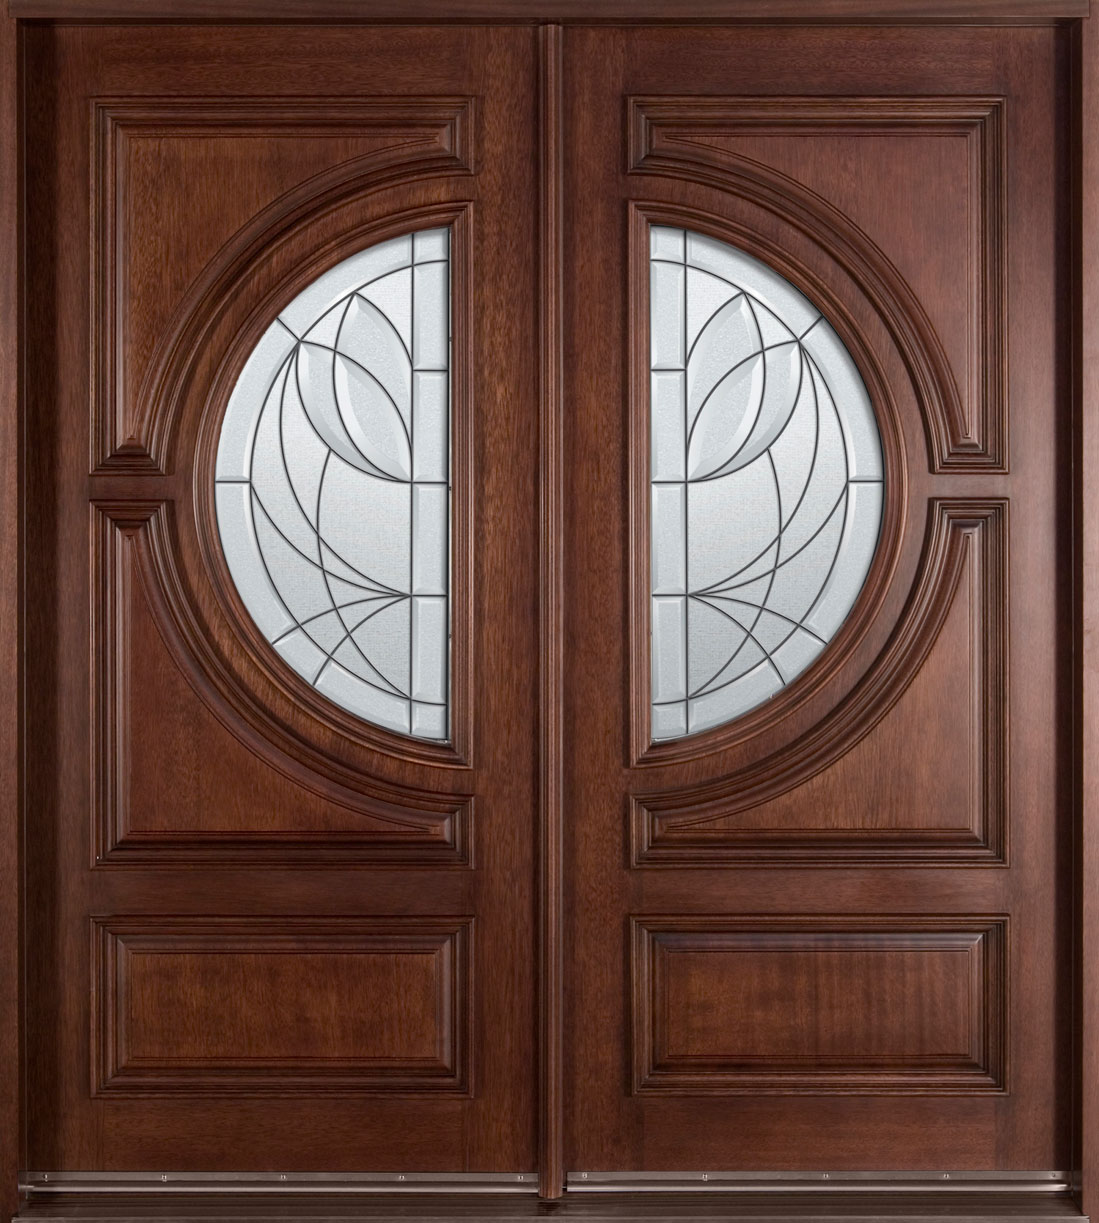 Wood Entry Doors from Doors for Builders, Inc..